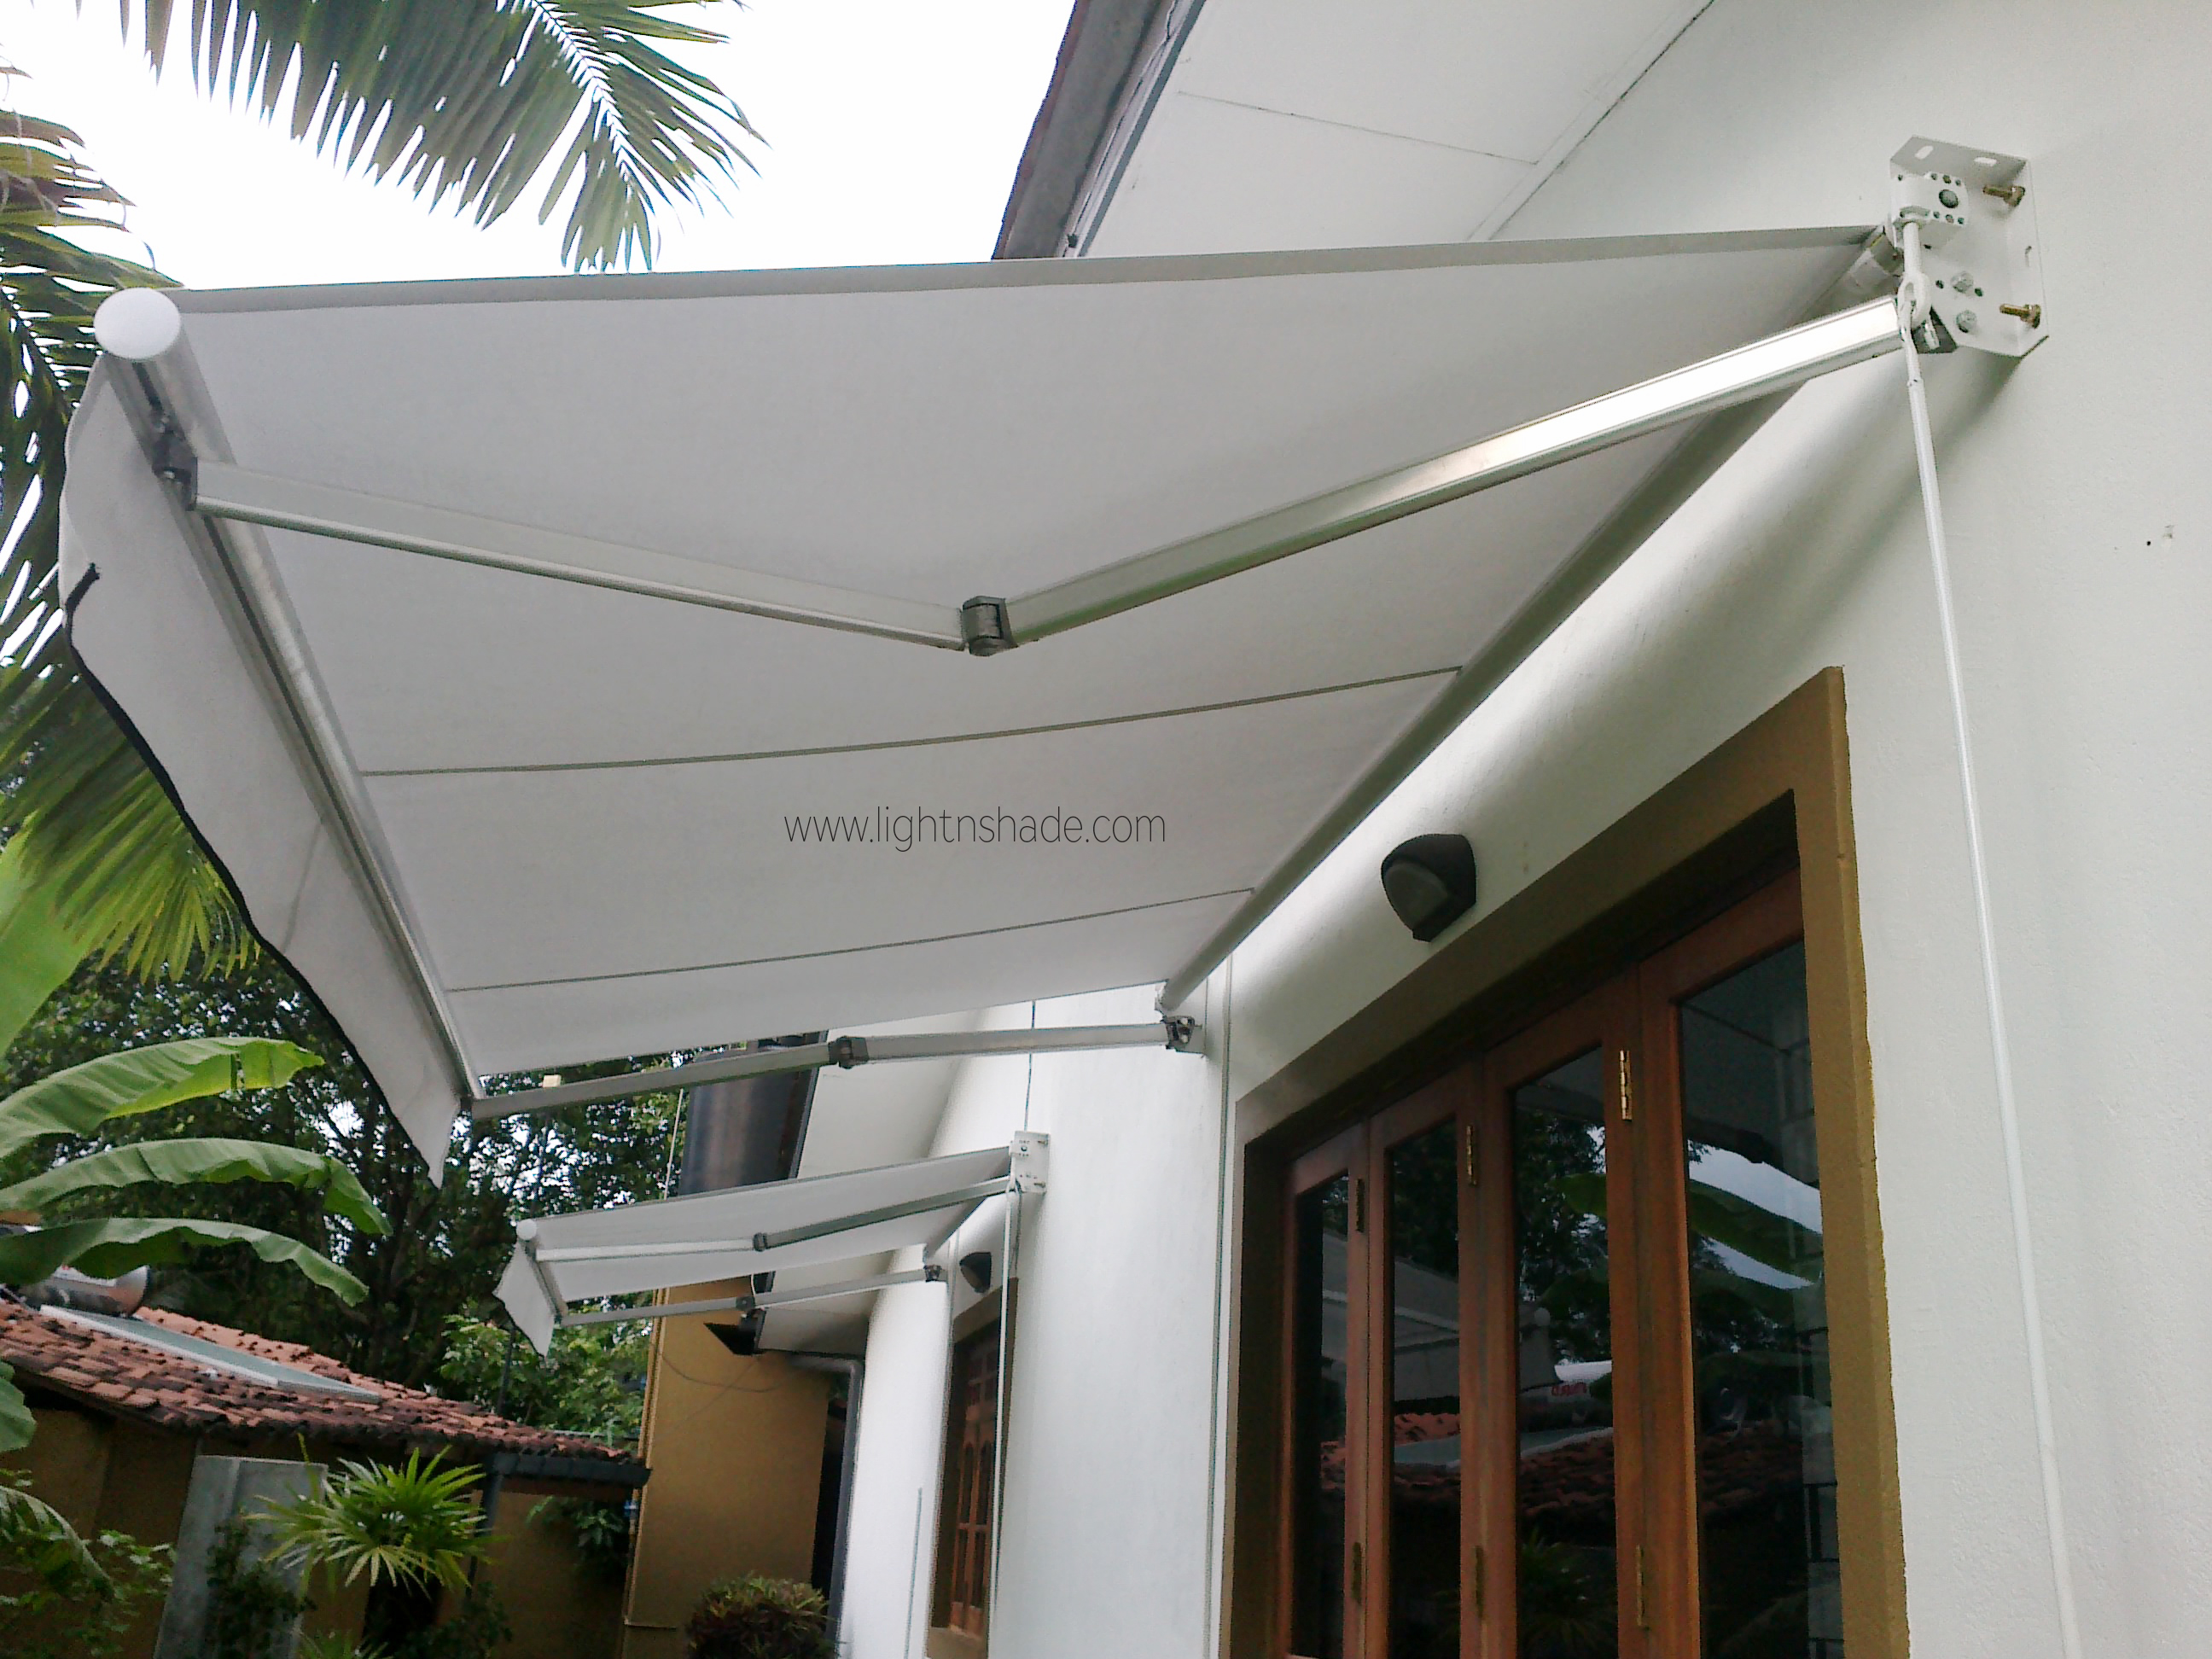 two tones a large function use pin interest the of fabric creative shade awnings adds for colors way decorative very and this in shading awning areas is sail